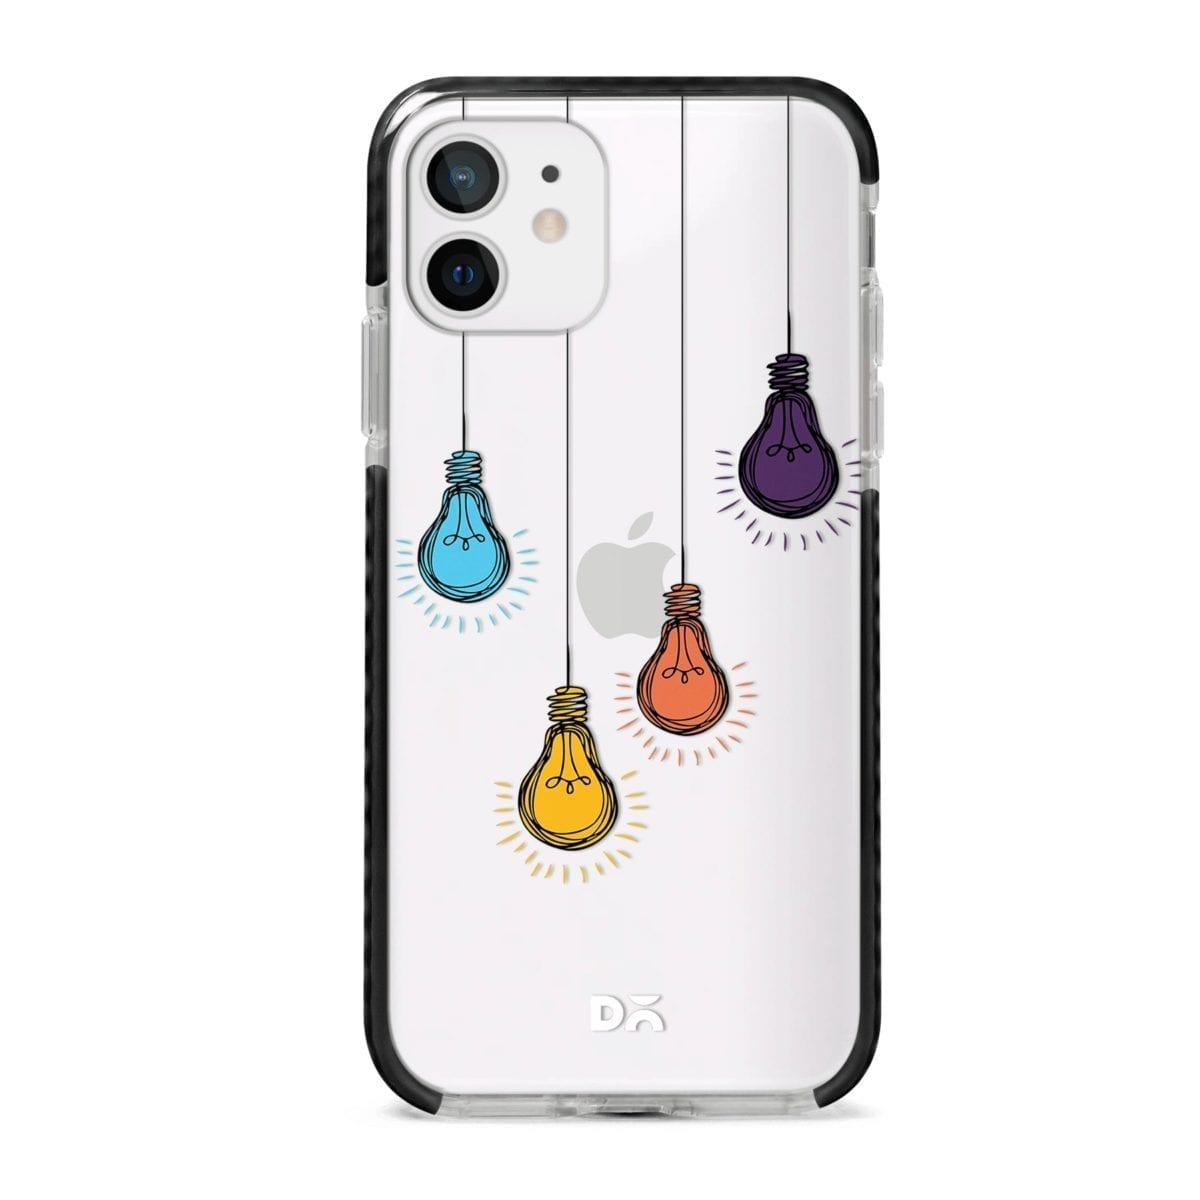 Clear Bulbs Stride Case Cover for Apple iPhone 12 Mini and Apple iPhone 12 with great design and shock proof | Klippik | Online Shopping | Kuwait UAE Saudi